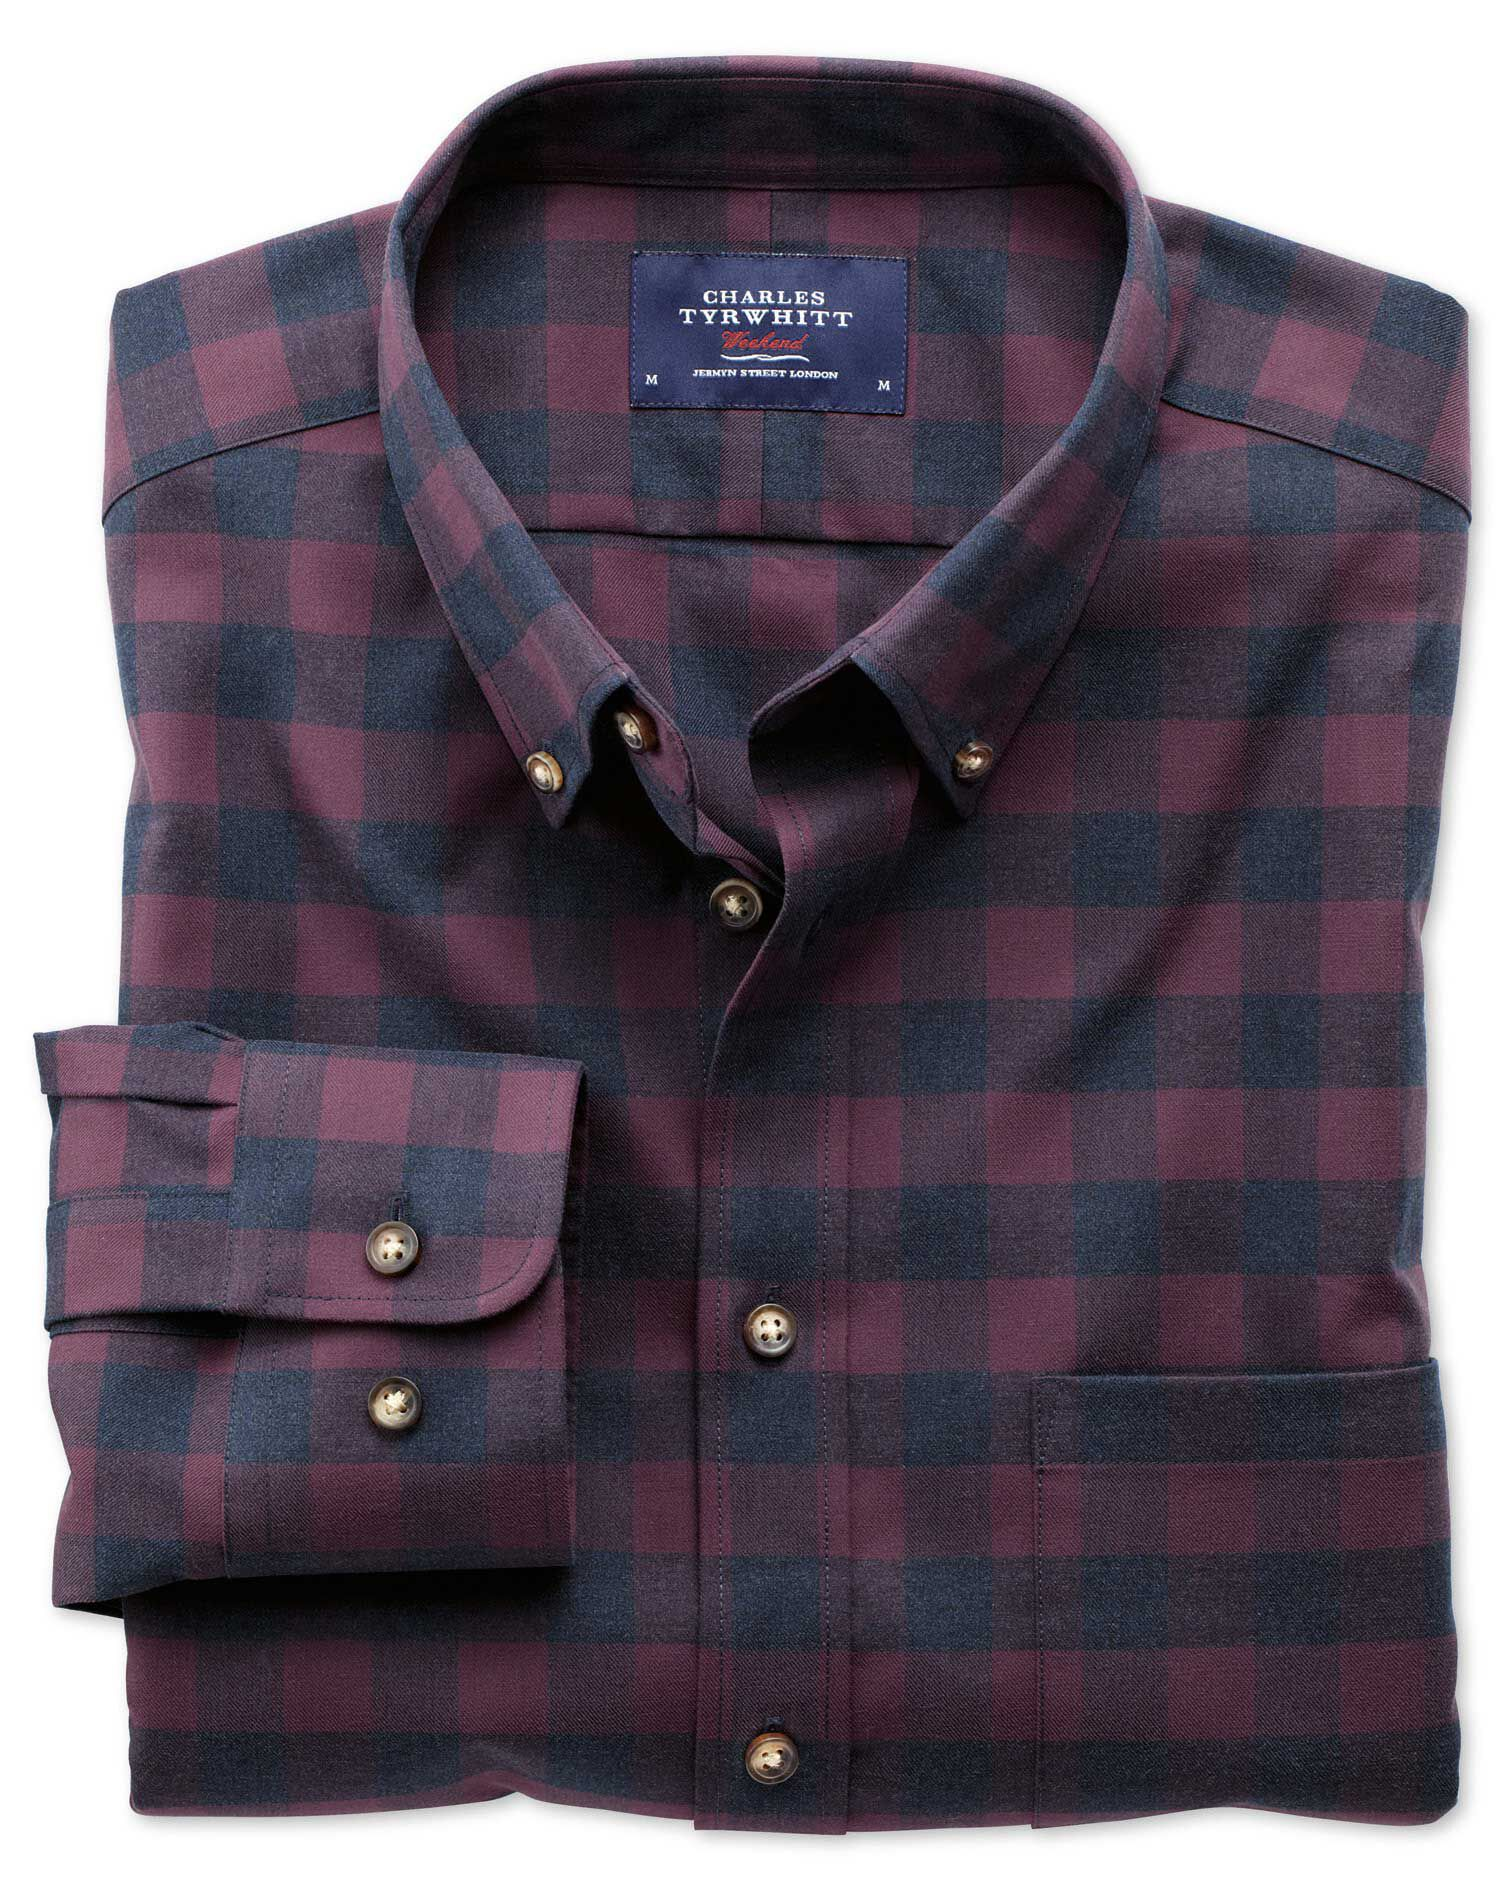 Slim Fit Non-Iron Twill Wine and Navy Check Cotton Shirt Single Cuff Size Large by Charles Tyrwhitt